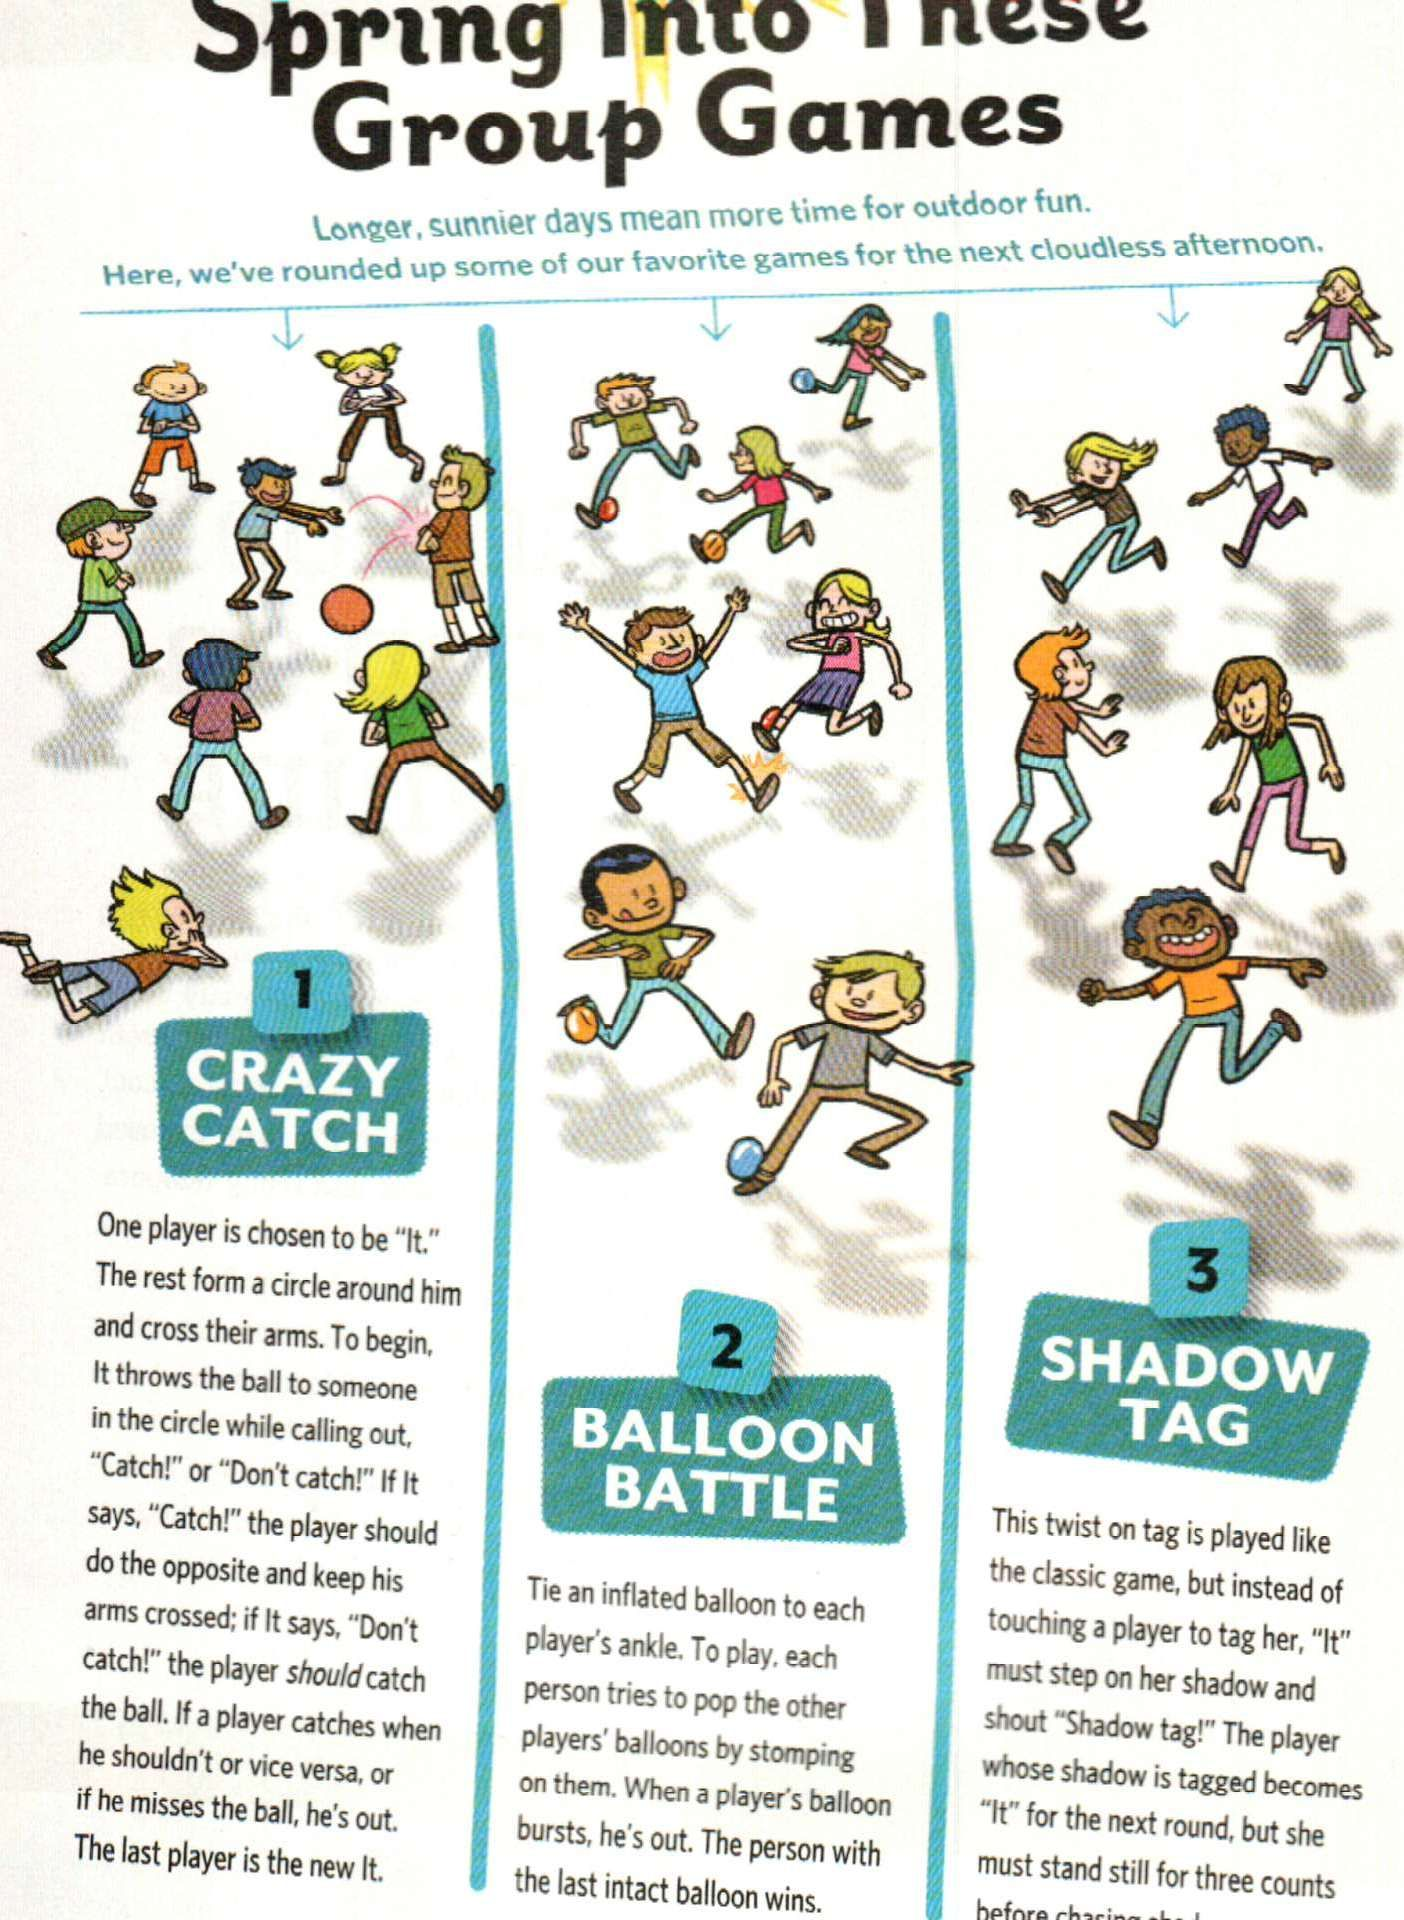 Balloon Battle for Brownies can play outside or inside depending